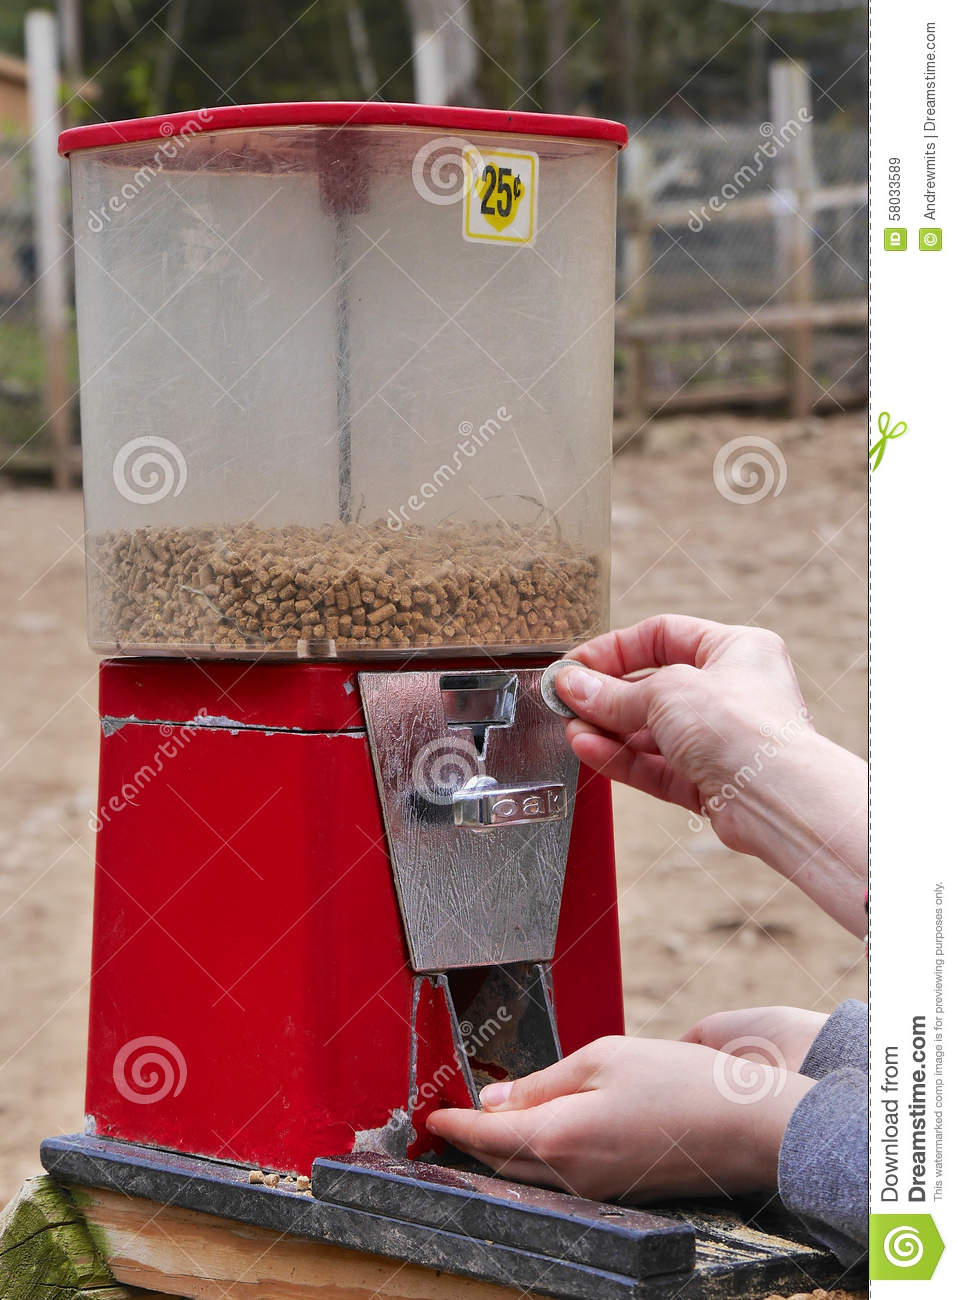 Petting Animals Food Dispenser Stock Image Image Of Dispenser Operating 58033589